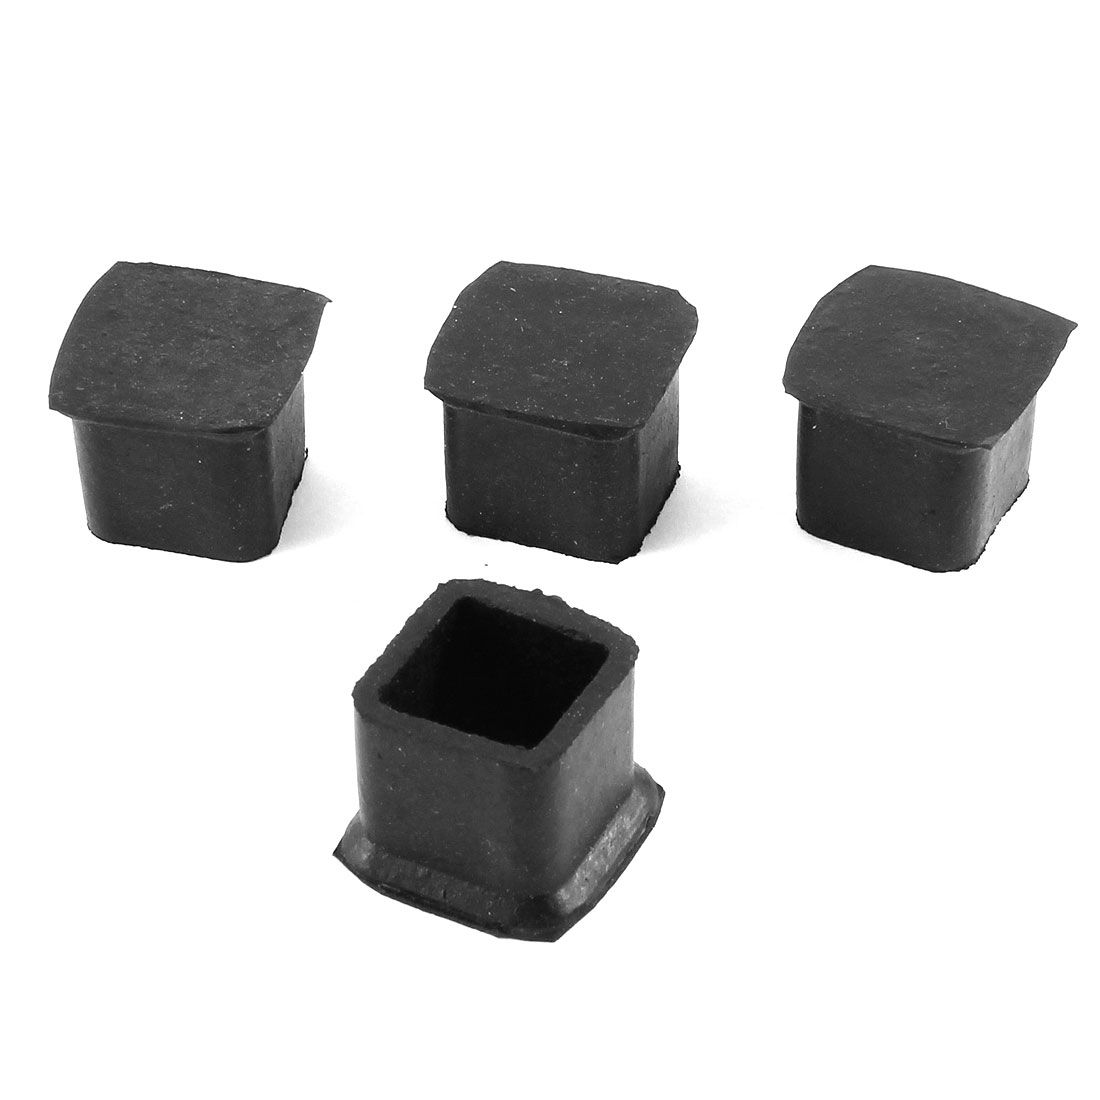 "1.3"" Height Furniture Table Desk Foot Leg Black Rubber Covers 4 Pcs"